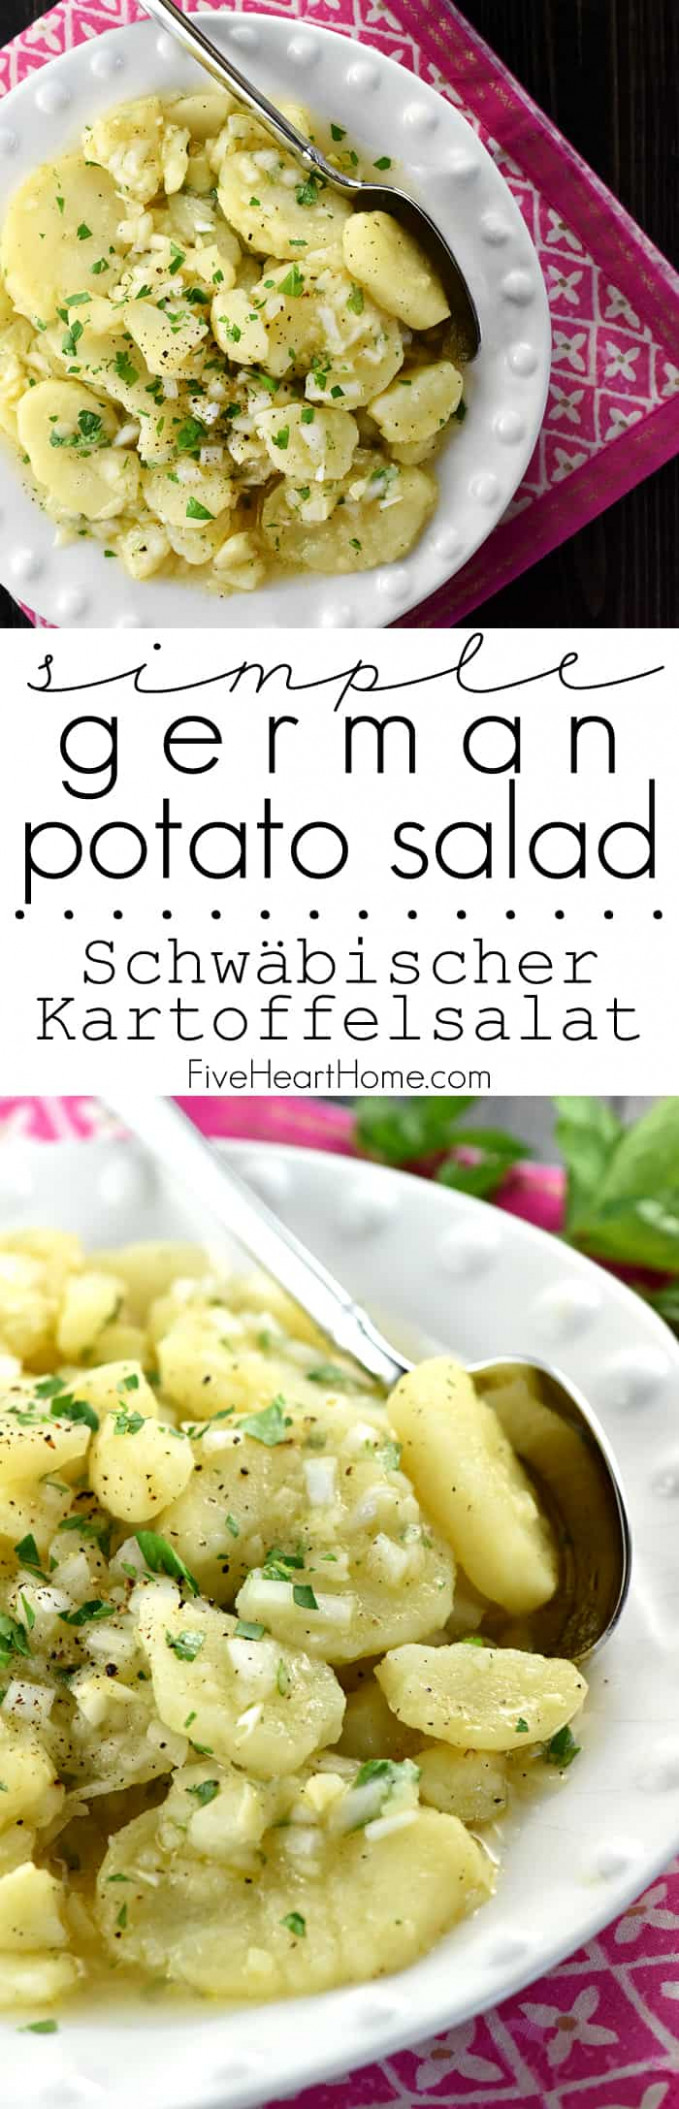 Swabian Kartoffelsalat - recipe vegetarian german potato salad